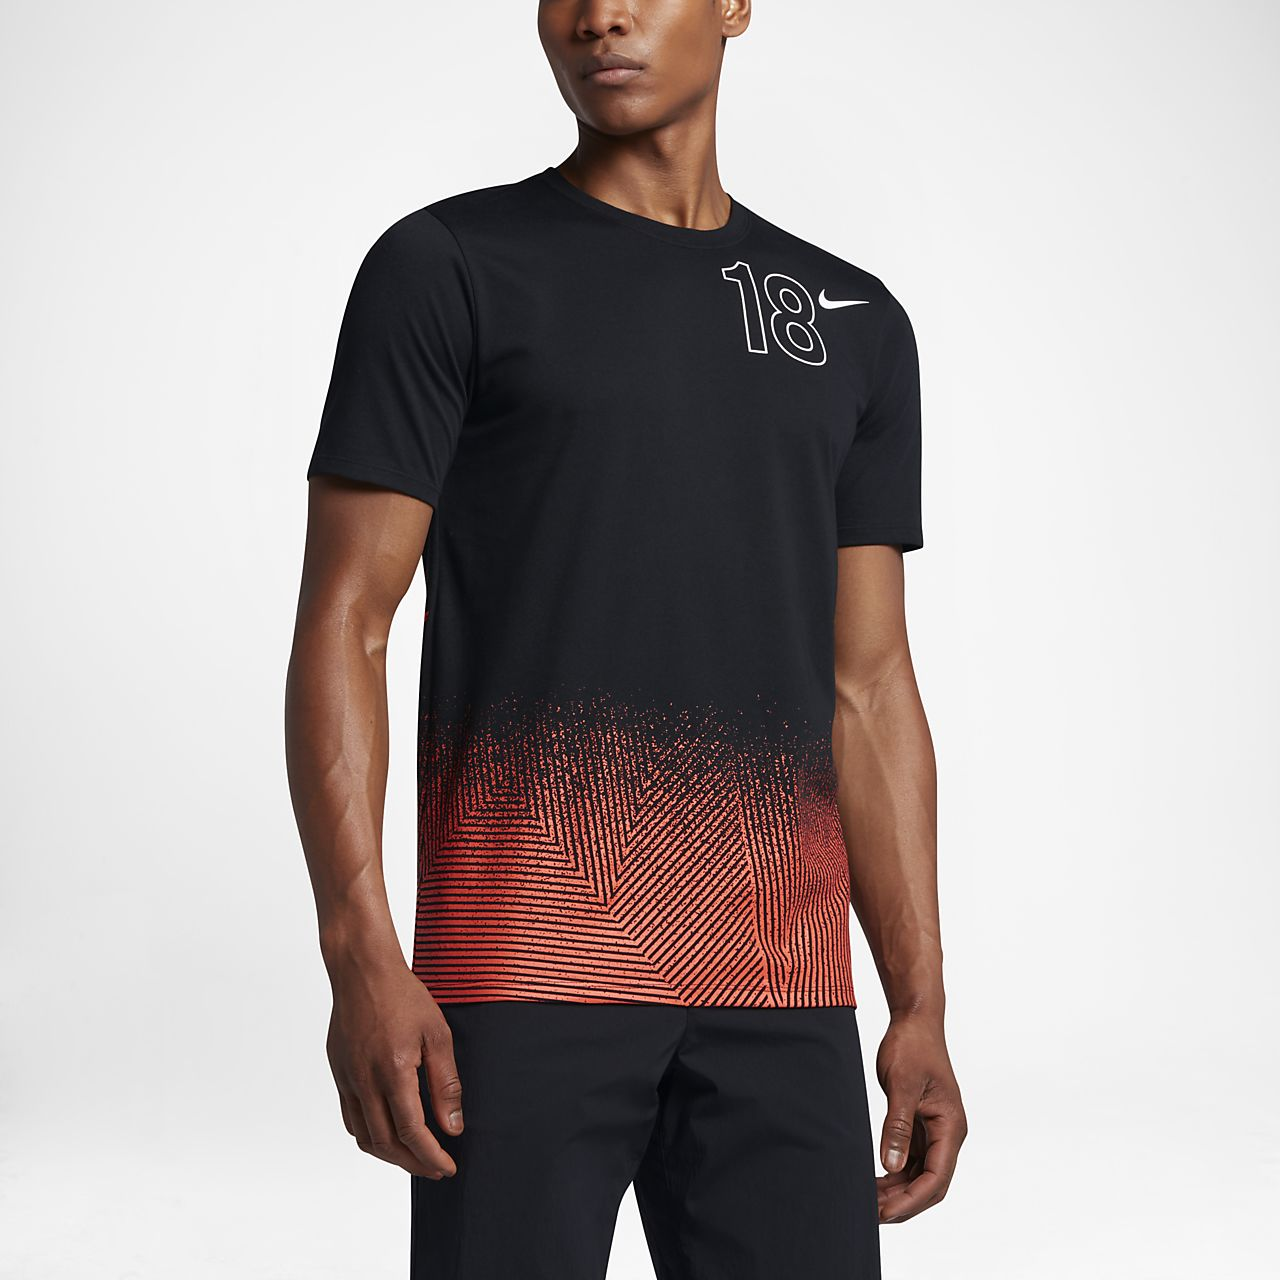 Nike Golf 18 Men's T-Shirt